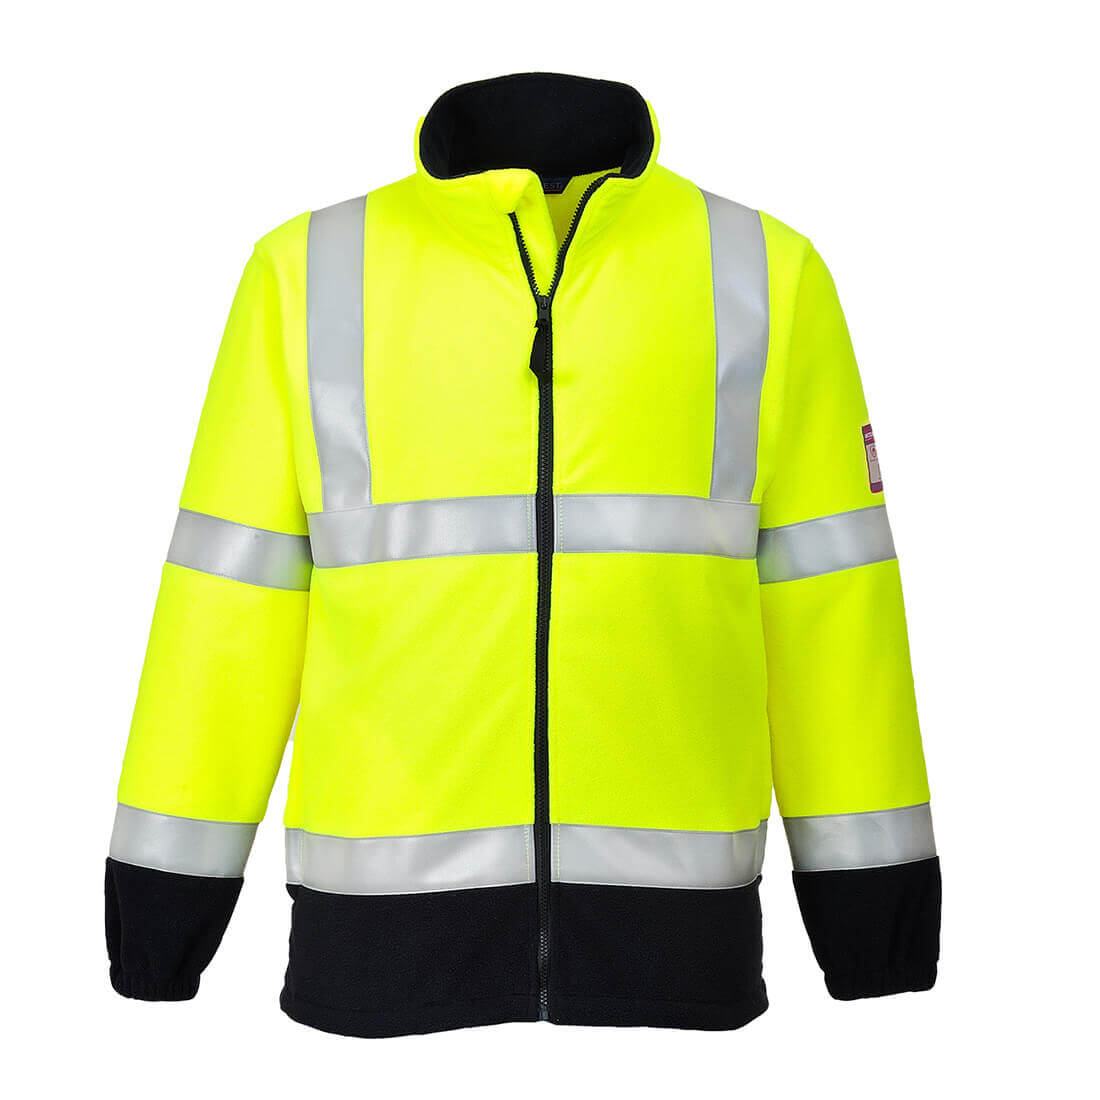 Image of Modaflame Flame Resistant Hi-Vis Fleece Yellow 2XL